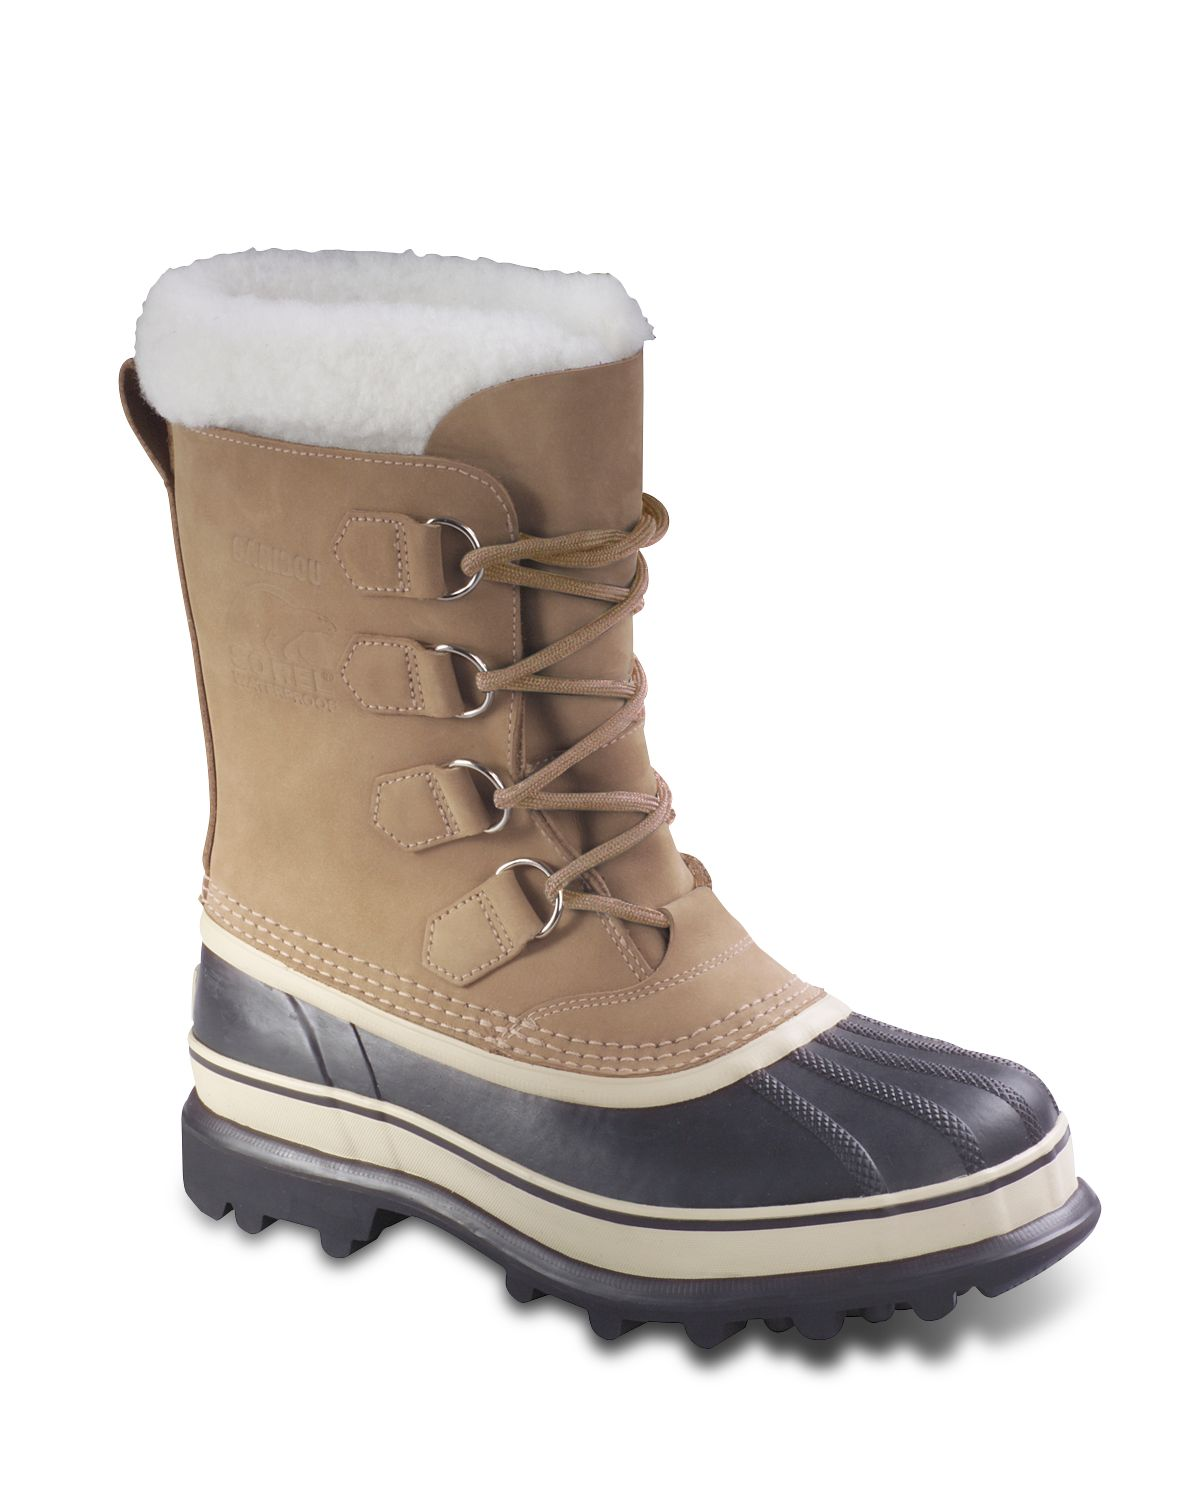 29 cool snow boots for sobatapk